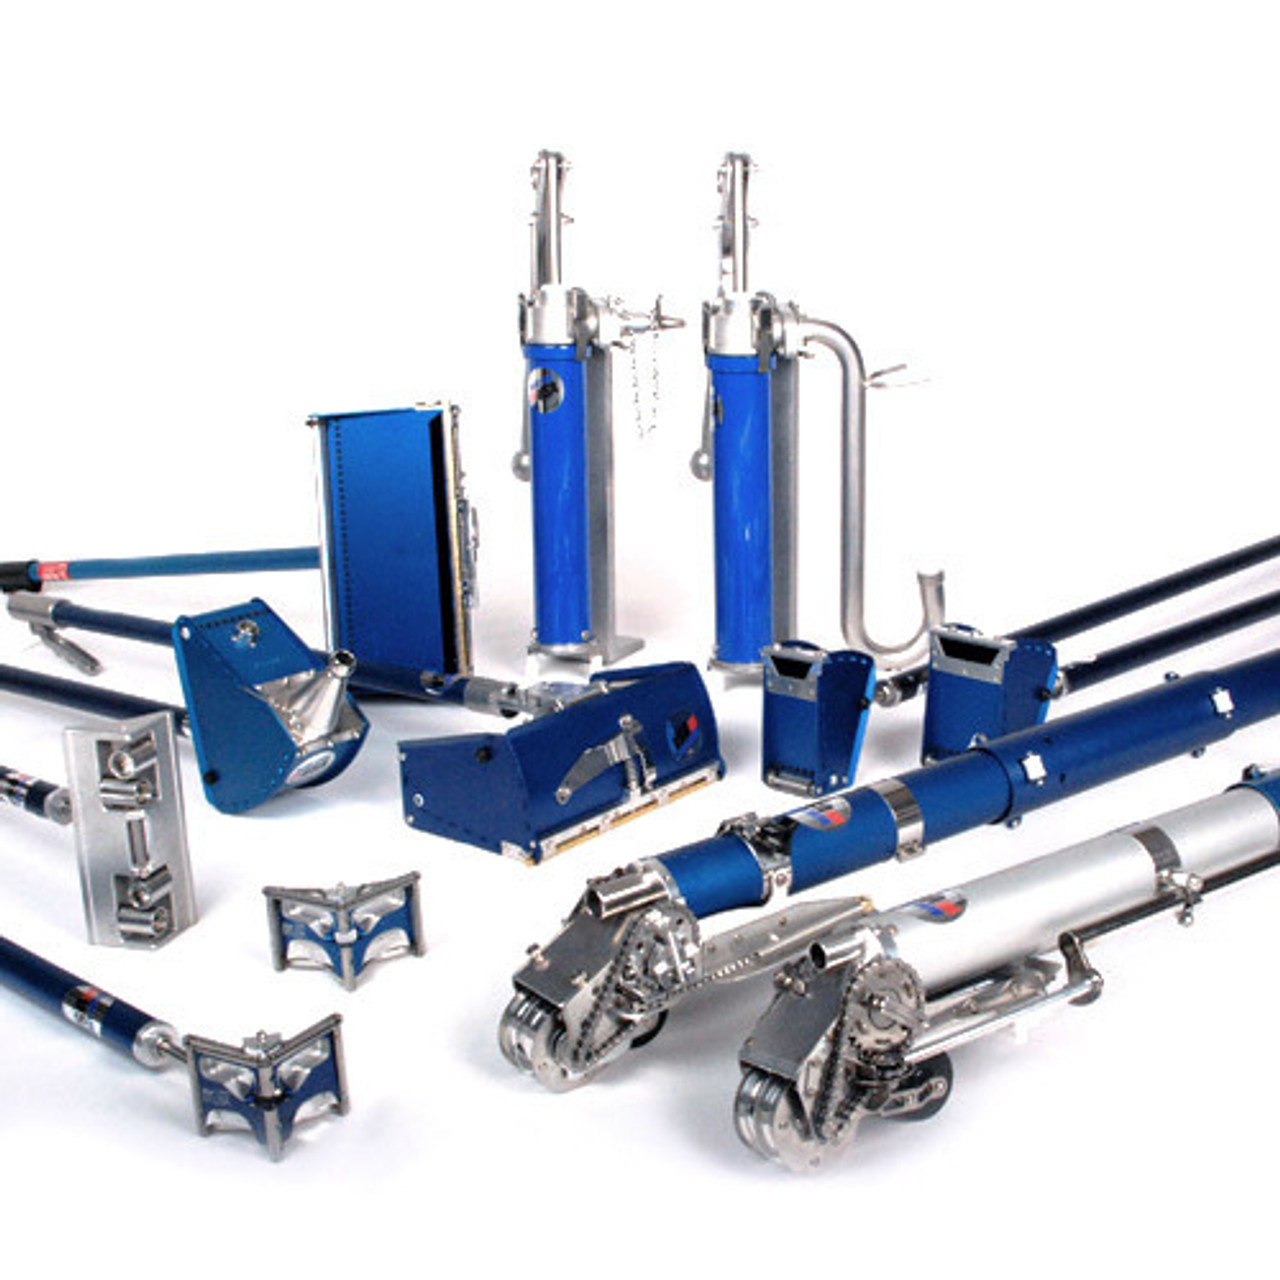 Automatic Taping Tool Sets